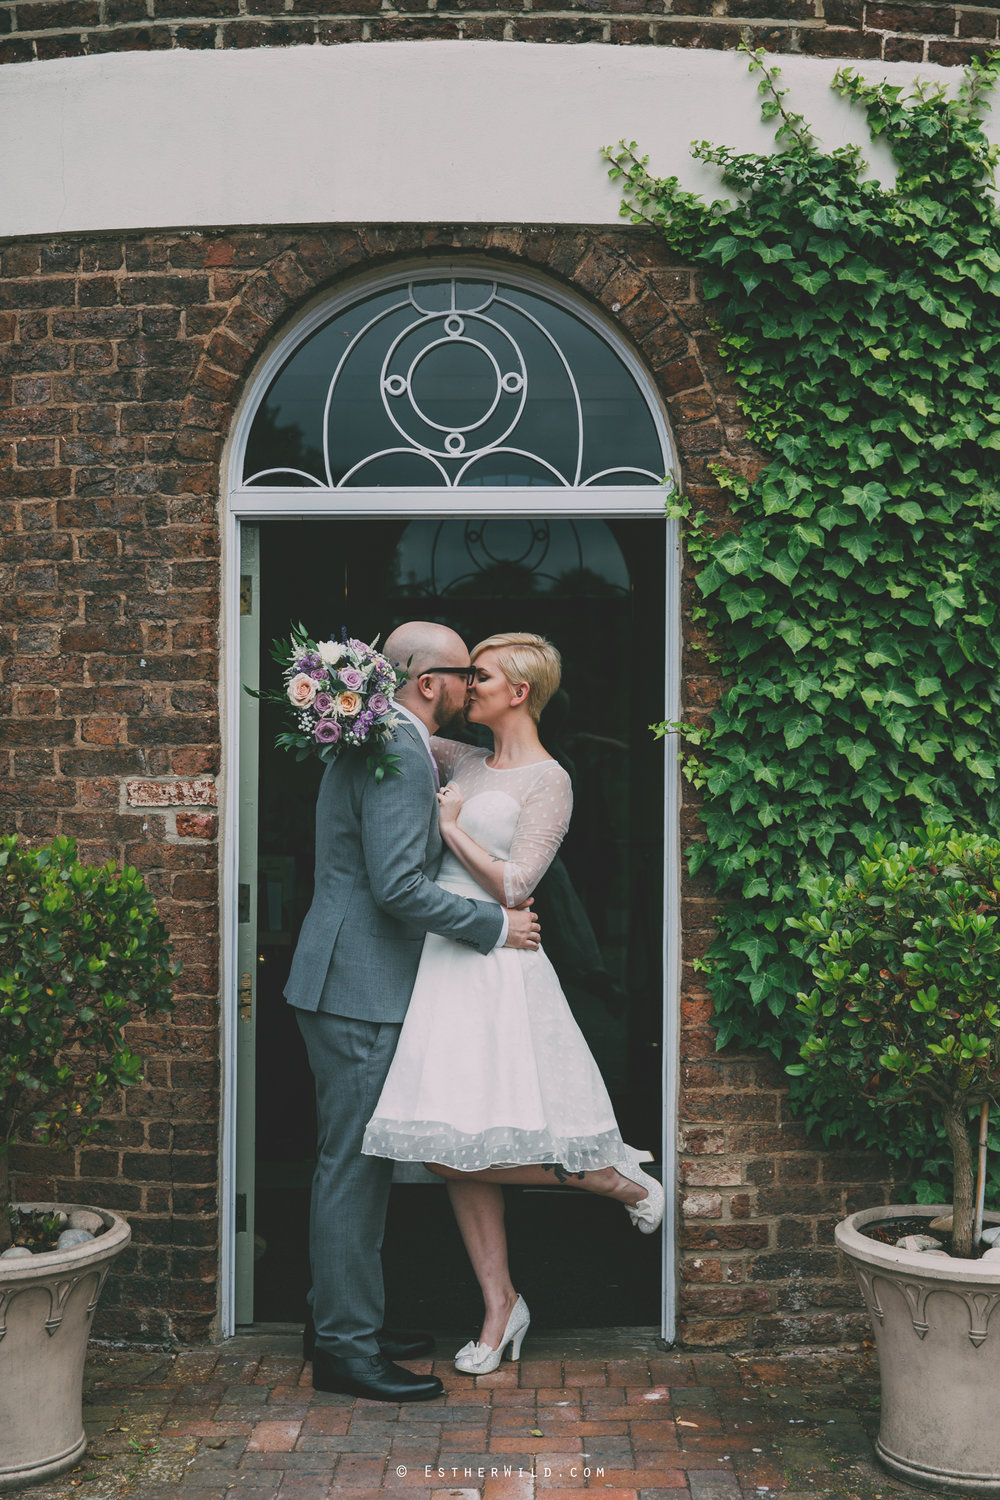 Clapham_Croydon_Morden_Park_London_Wedding_Photographer_Photography_Esther_Wild_Norfolk_IMG_5631.jpg